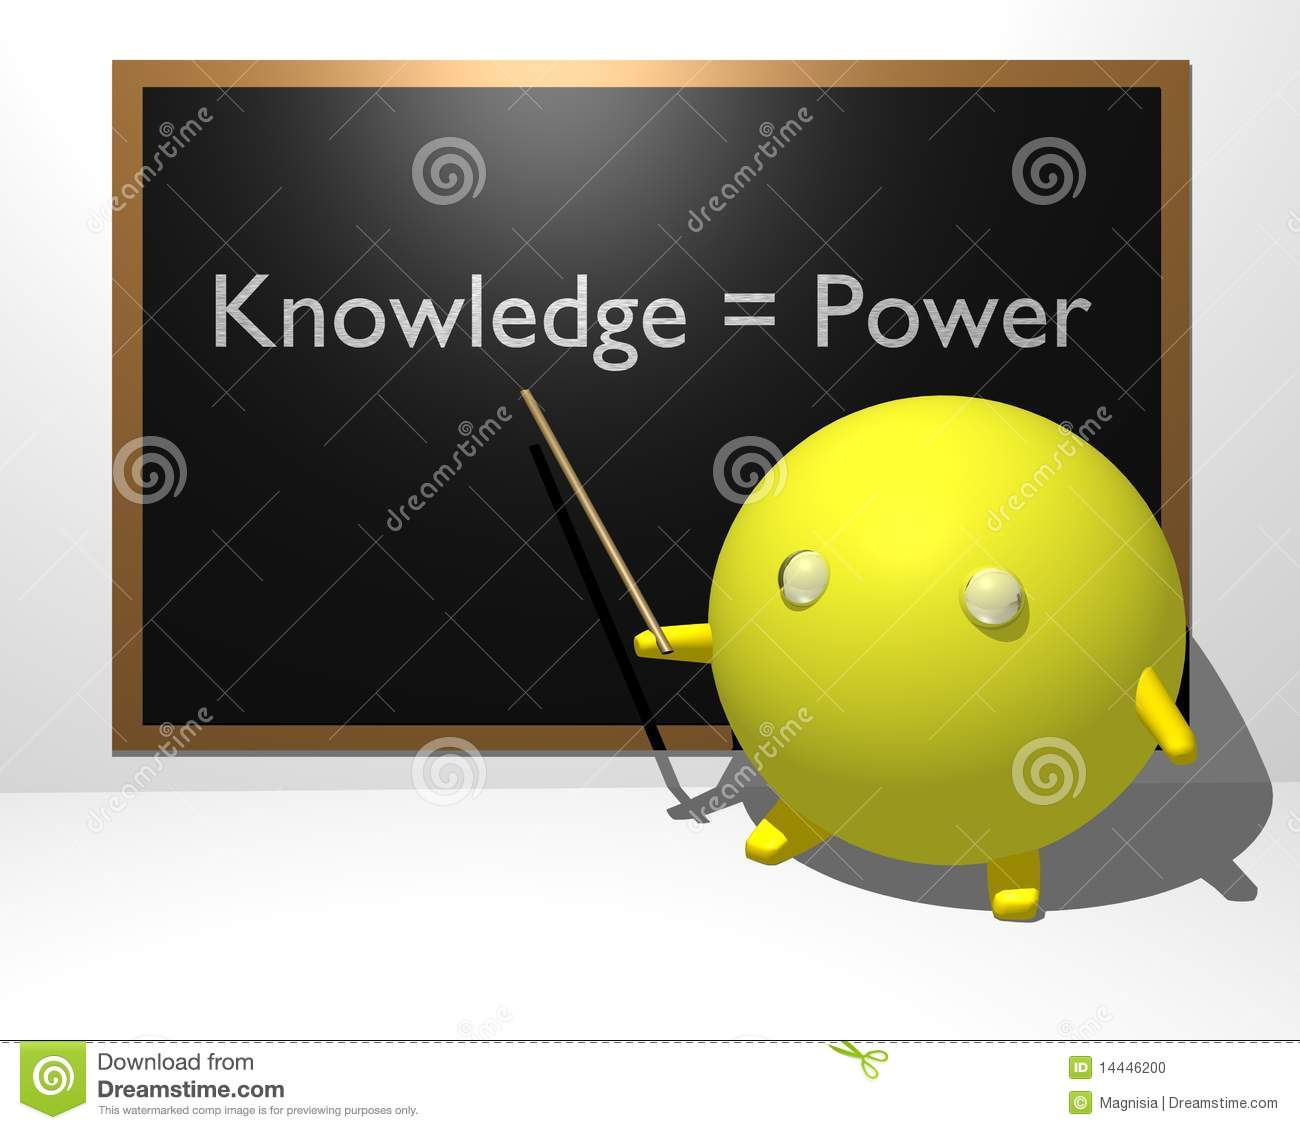 Knowledge equals Power